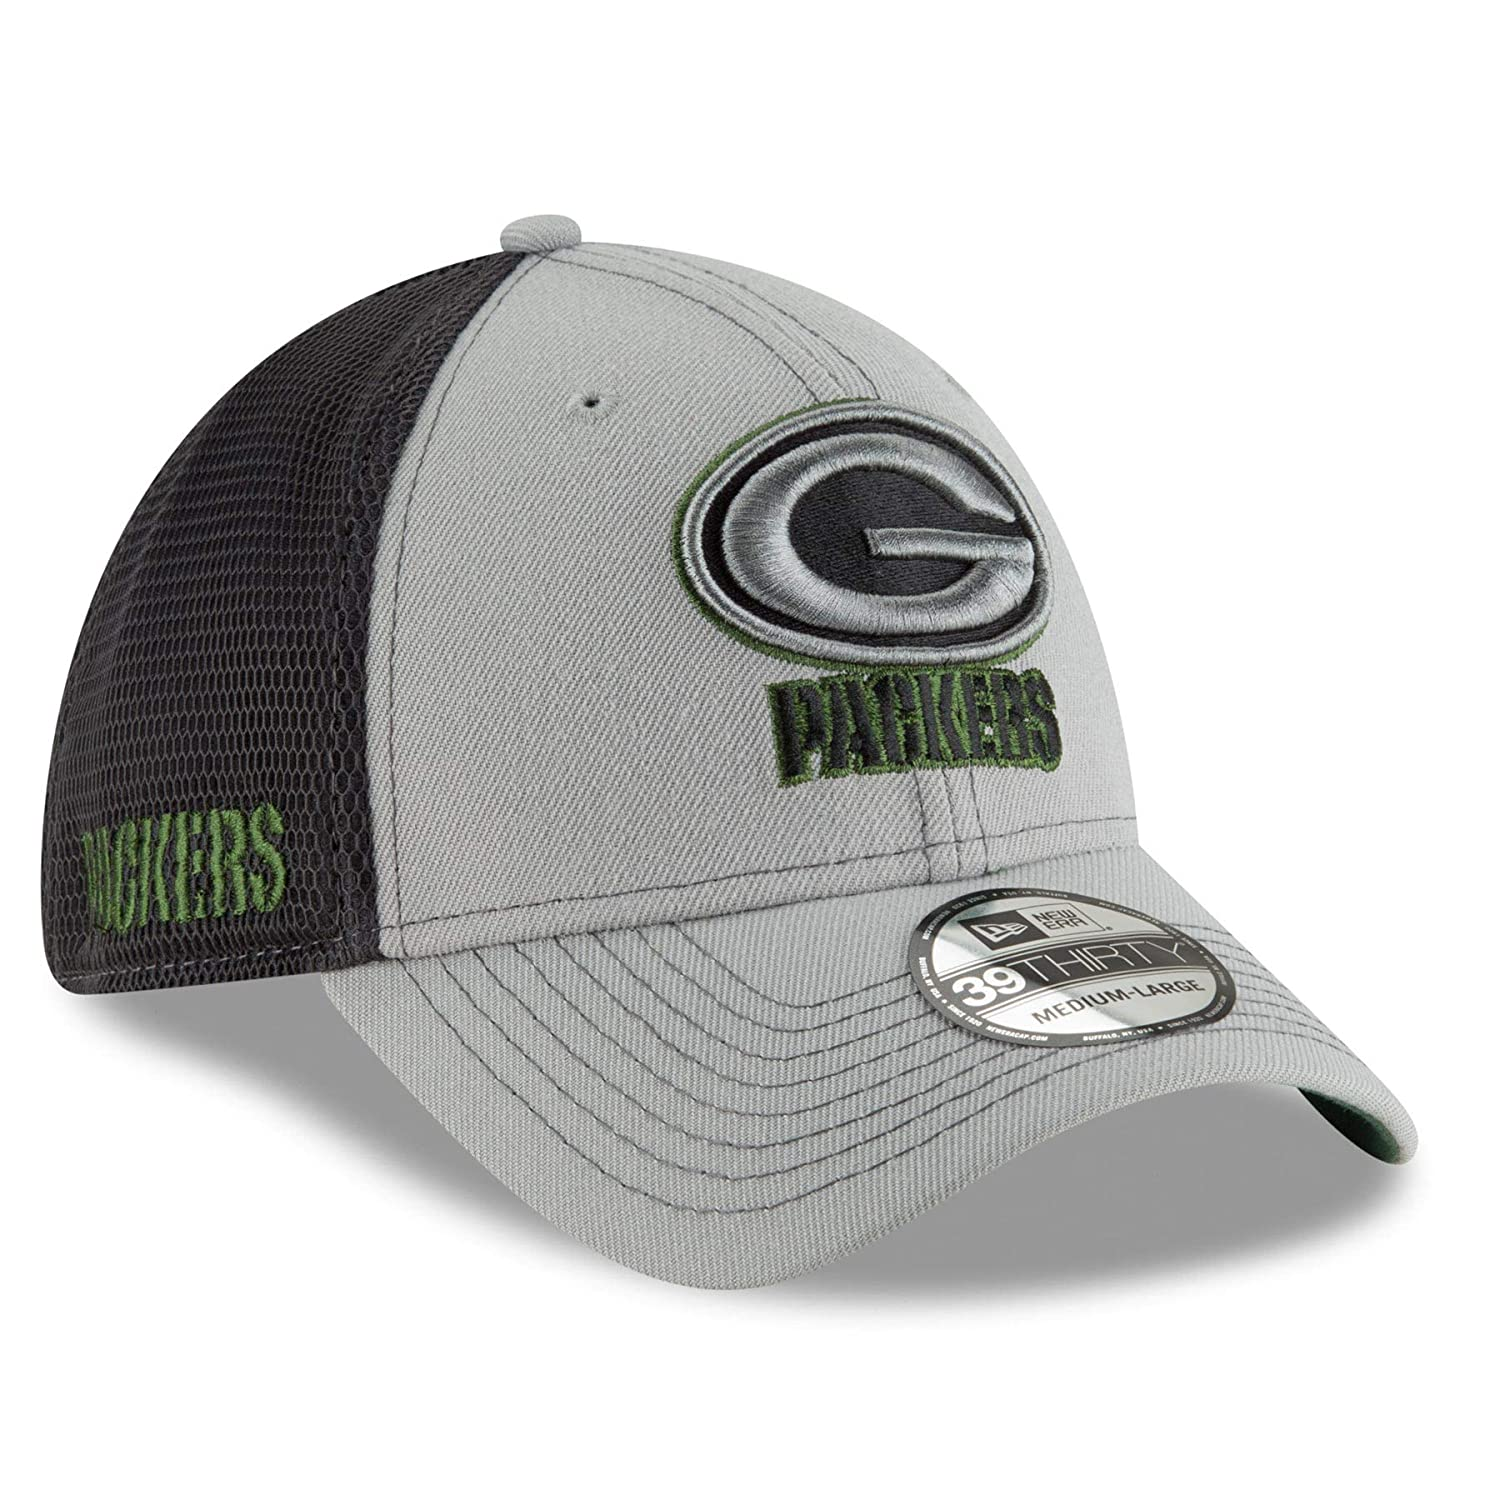 e6821914780 ... promo code for green bay packers 2t sided 39thirty stretch fit hat  graphite new era 8c8de